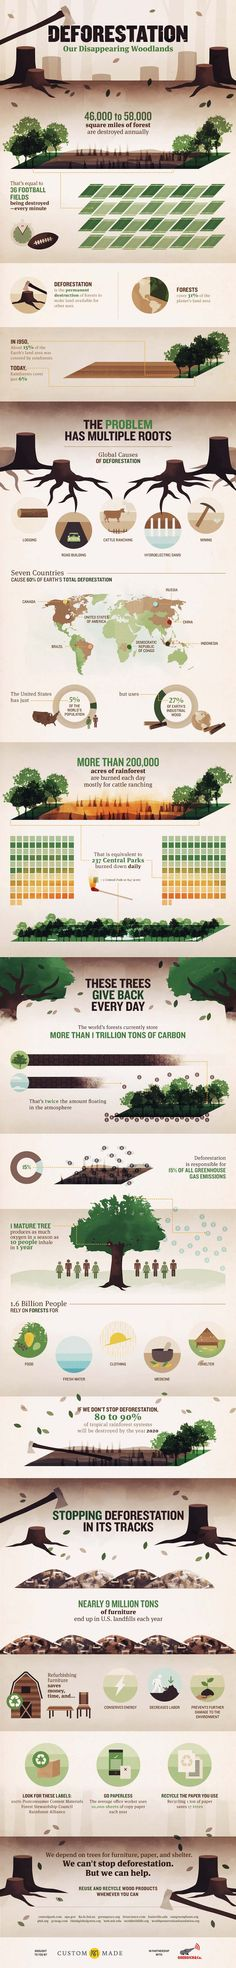 We Have Less Than 1/2 As Many Forests As In 1950